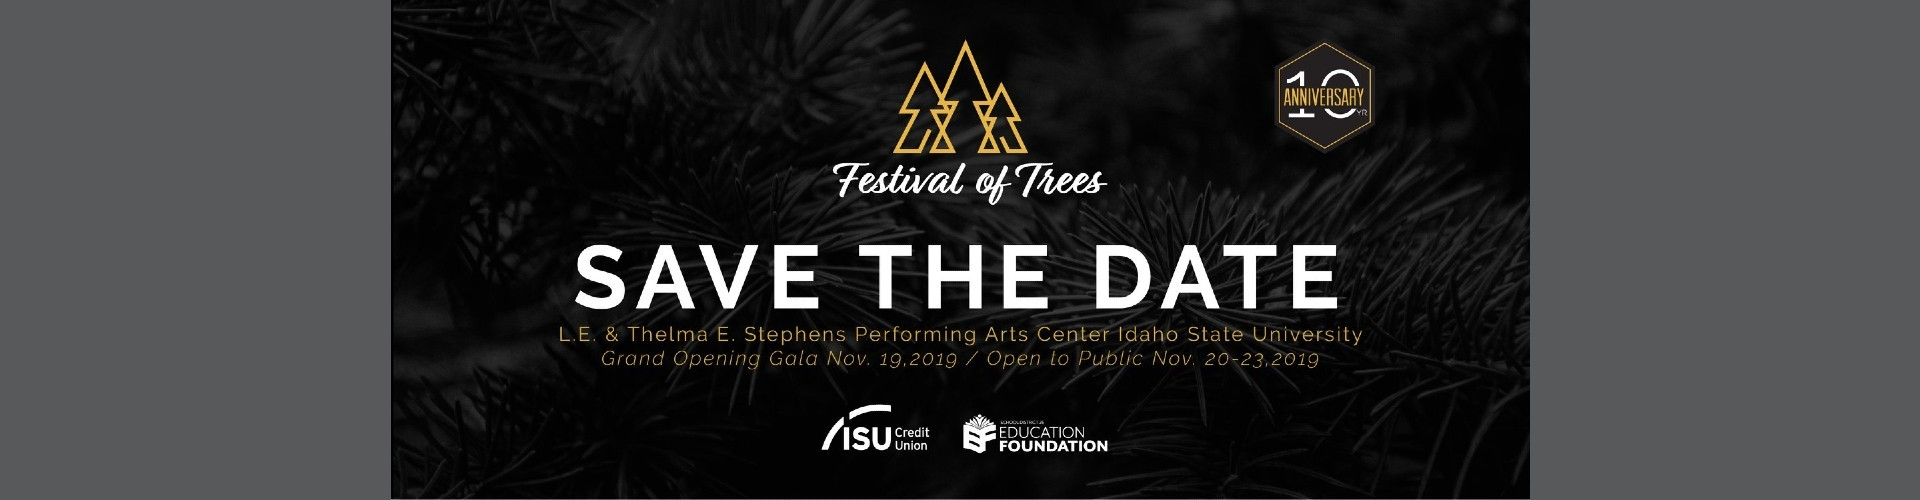 Save the Date Graphic for festival of trees